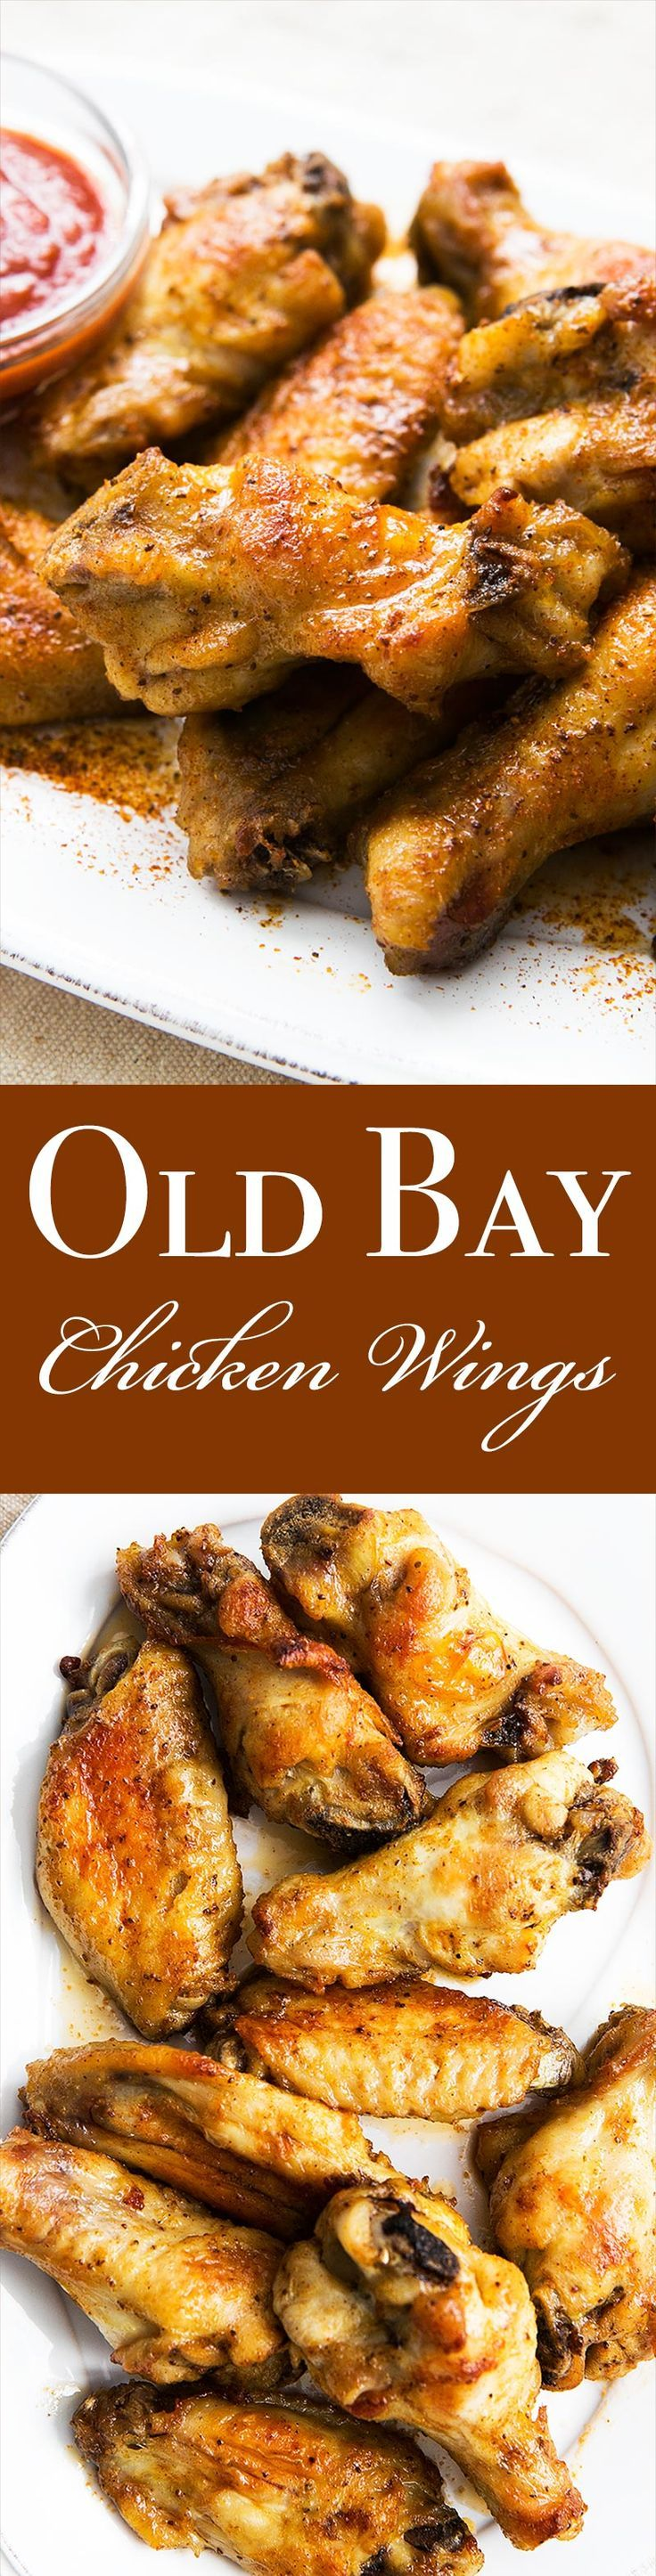 Love Old Bay seasoning? It's AWESOME on chicken wings! Perfect #GameDay #SuperBowl #snack On SimplyRecipes.com (Bake Shrimp Old Bay)